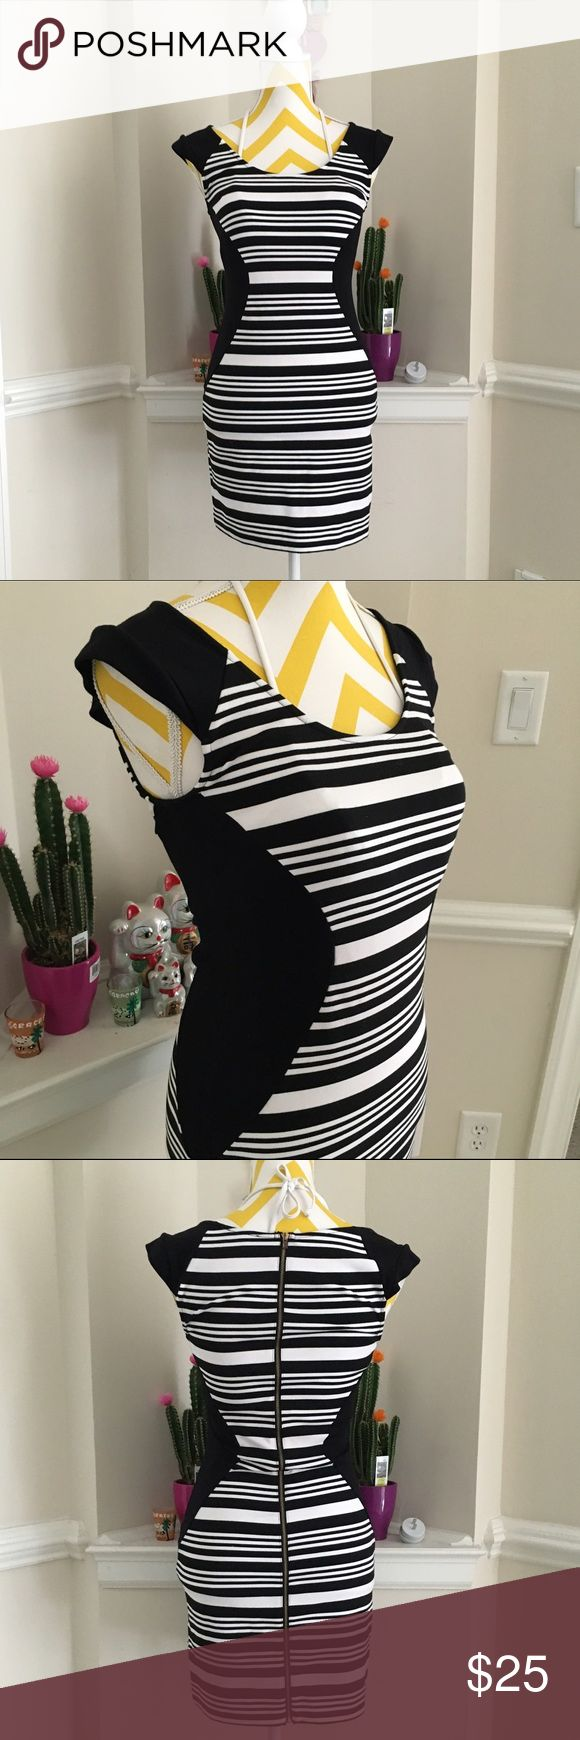 Sexy little black dress Black and white stripes, accentuate the body, with curve hugging design. No pockets. Zips all the way at the back. Stunning. Will fit a size 2. No damage, pristine condition! Send offers thru offer button. Express Dresses Mini